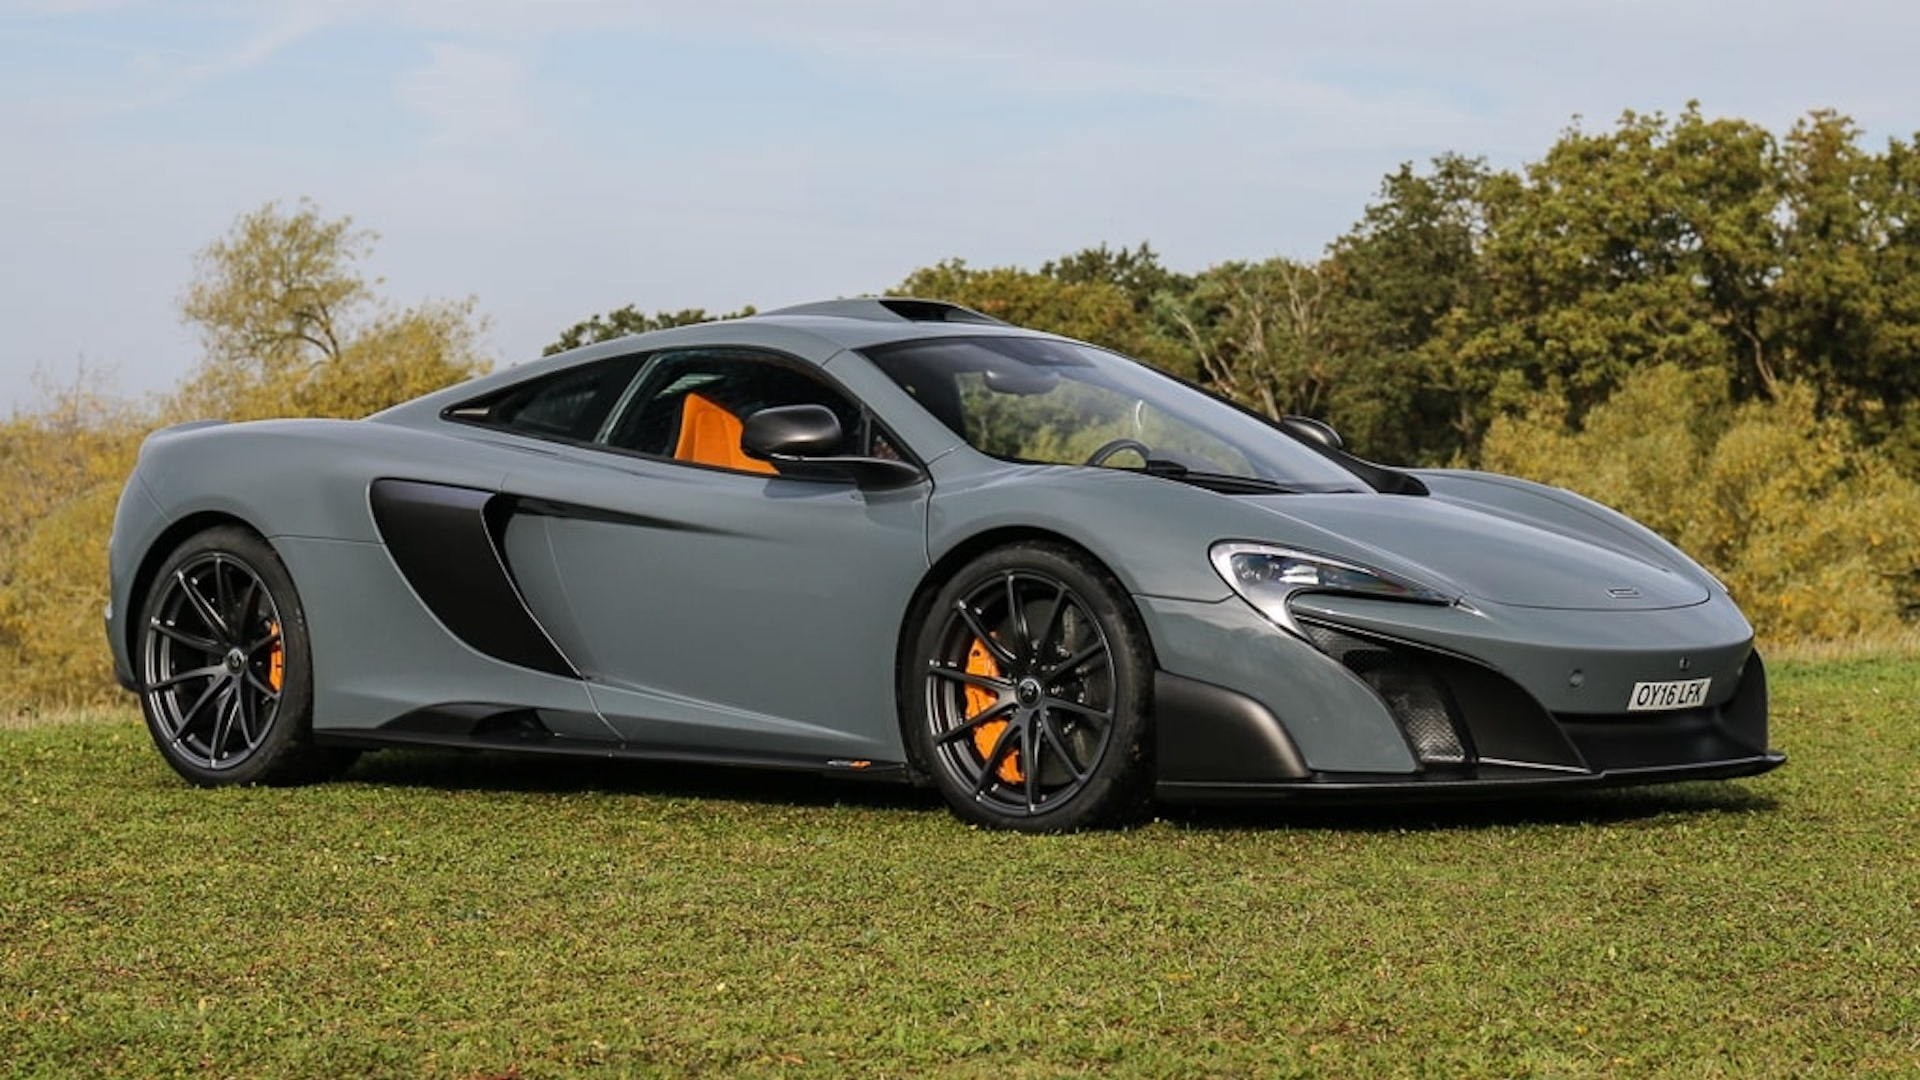 2016 McLaren 675 LT, Jay Kay collection